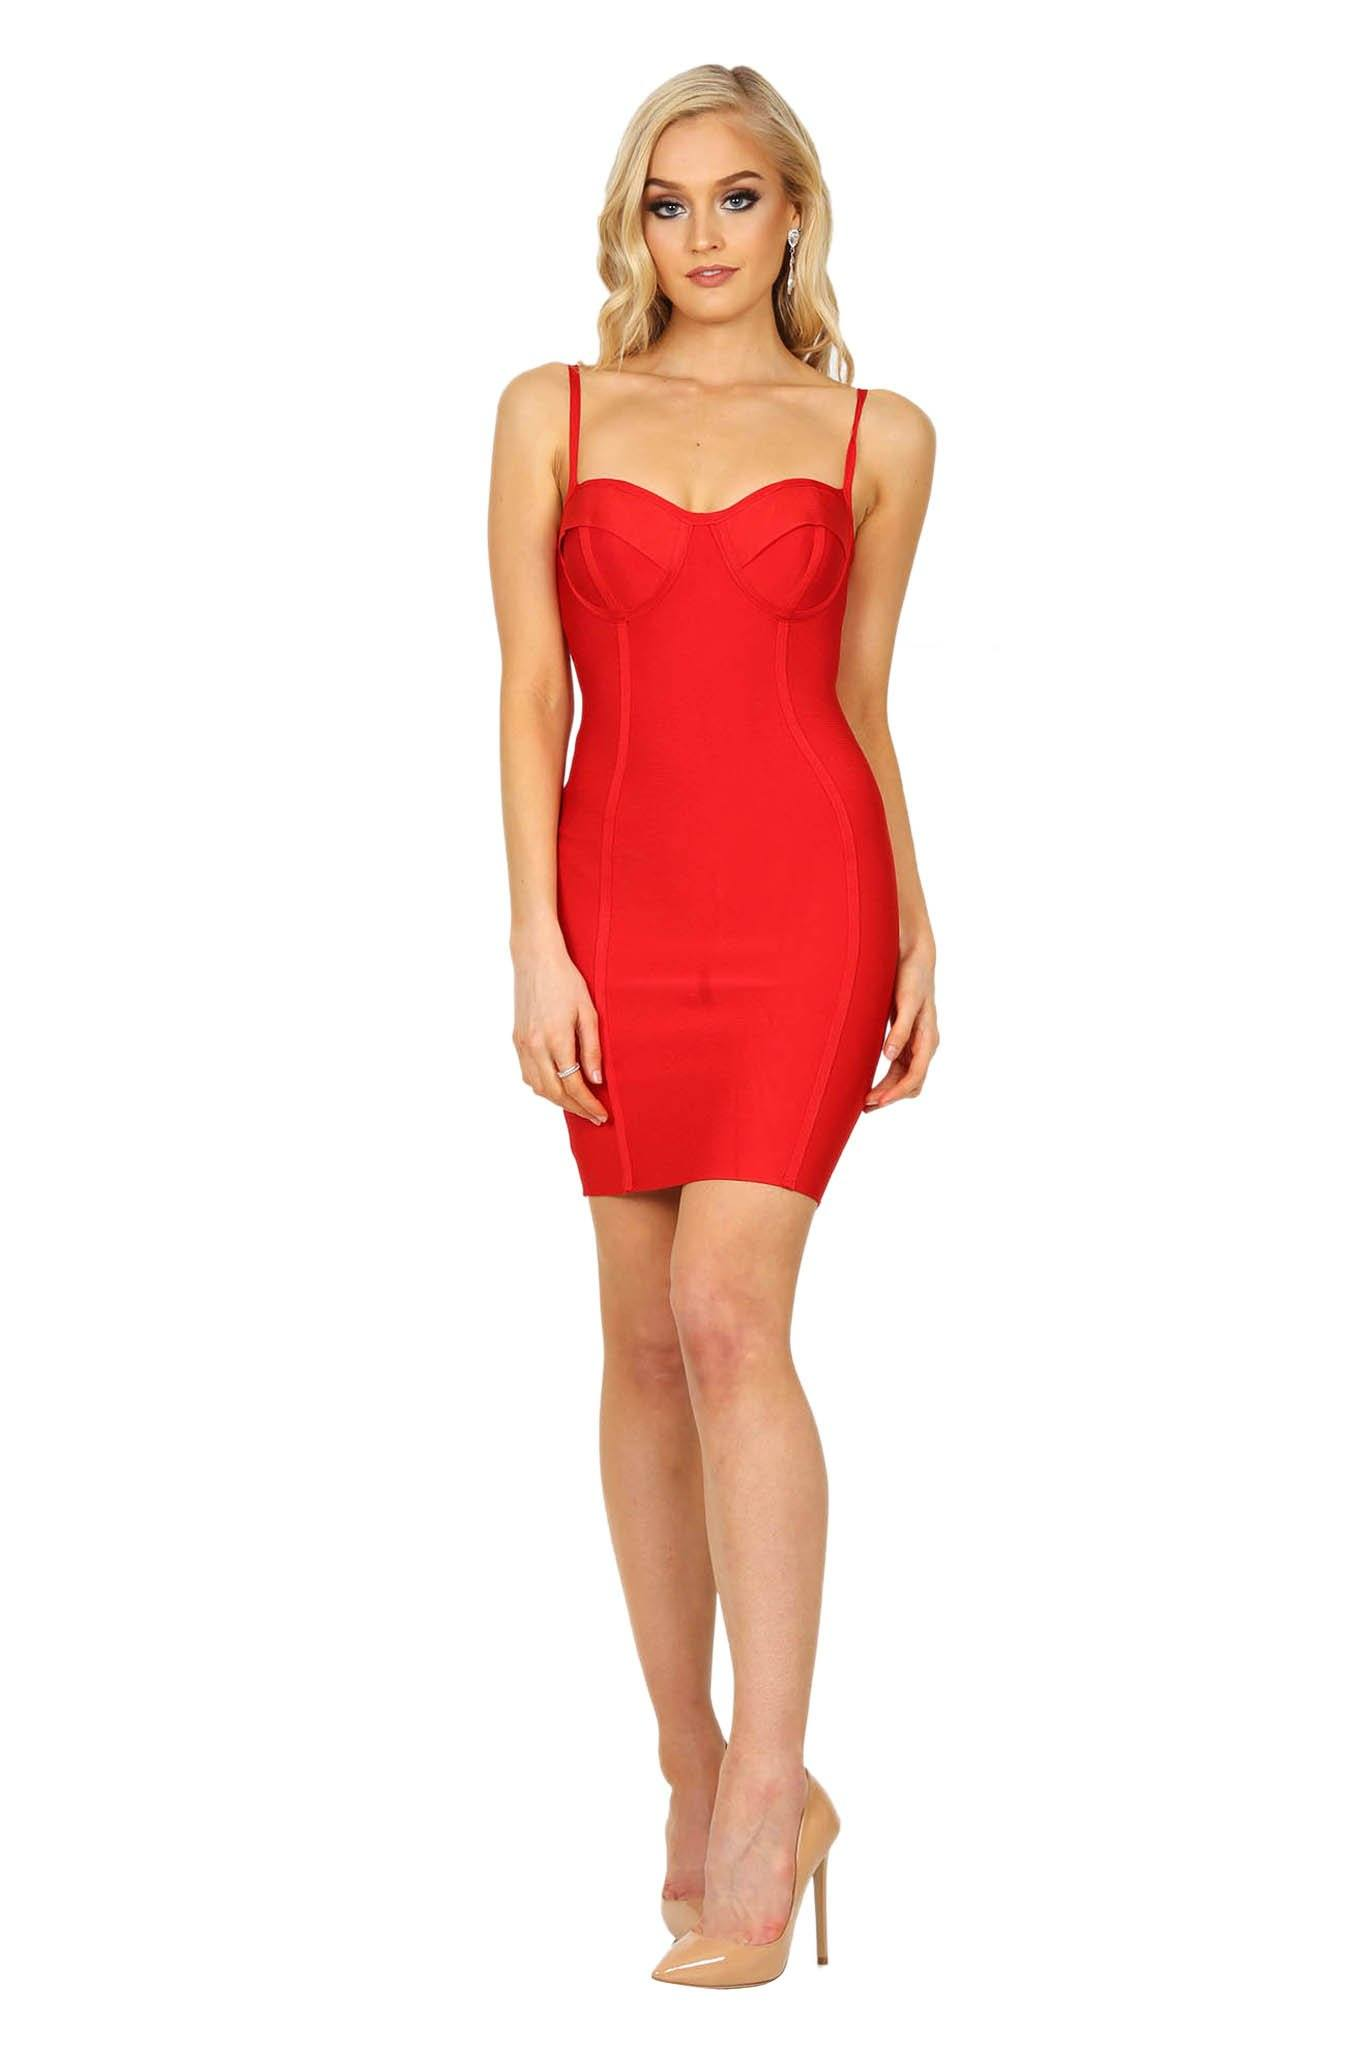 Red mini bandage dress with subtle sweetheart neckline and thin adjustable straps